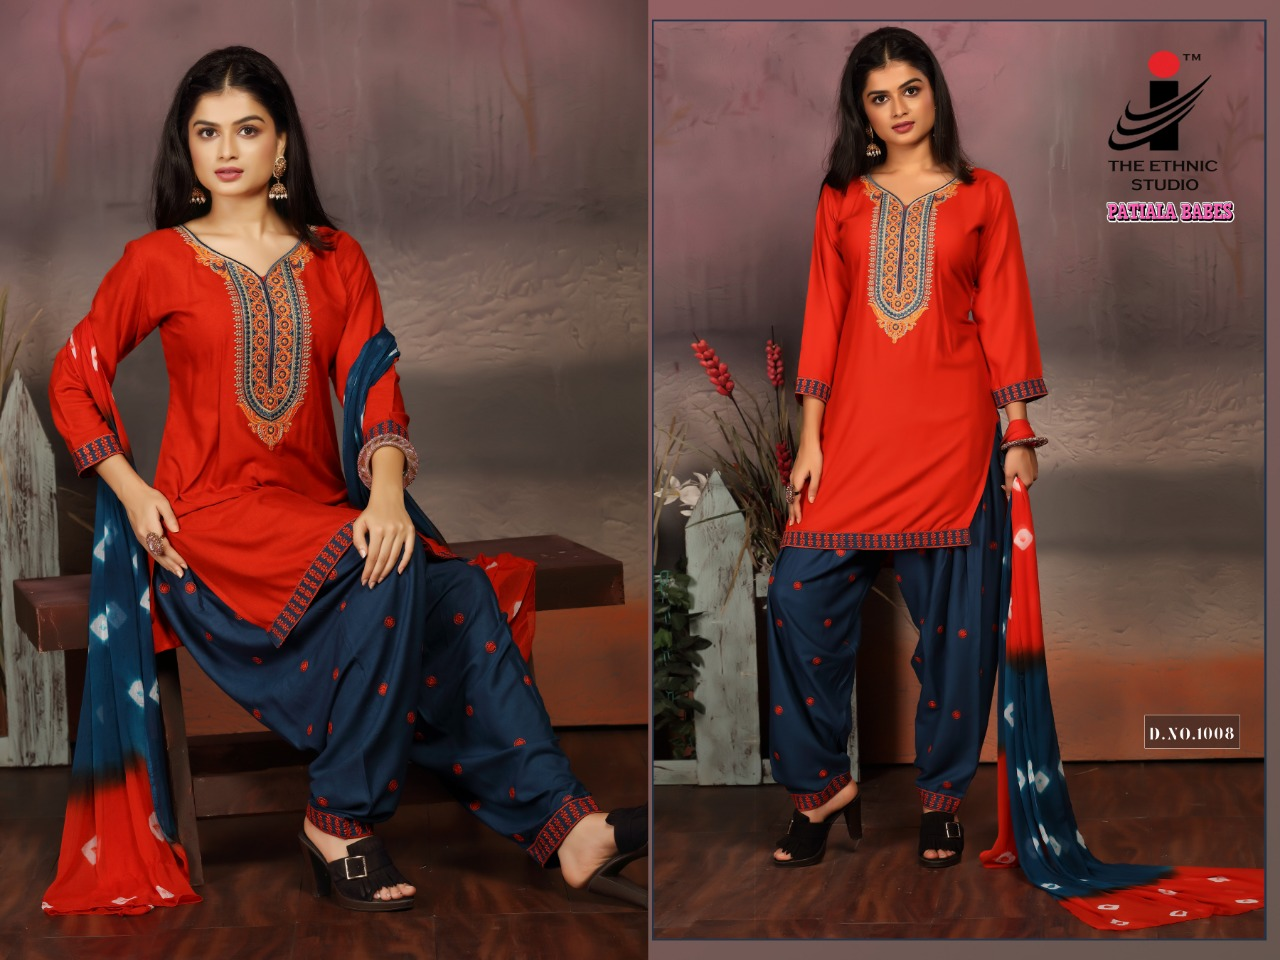 The Ethnic Studio Patiyala Babes collection 3